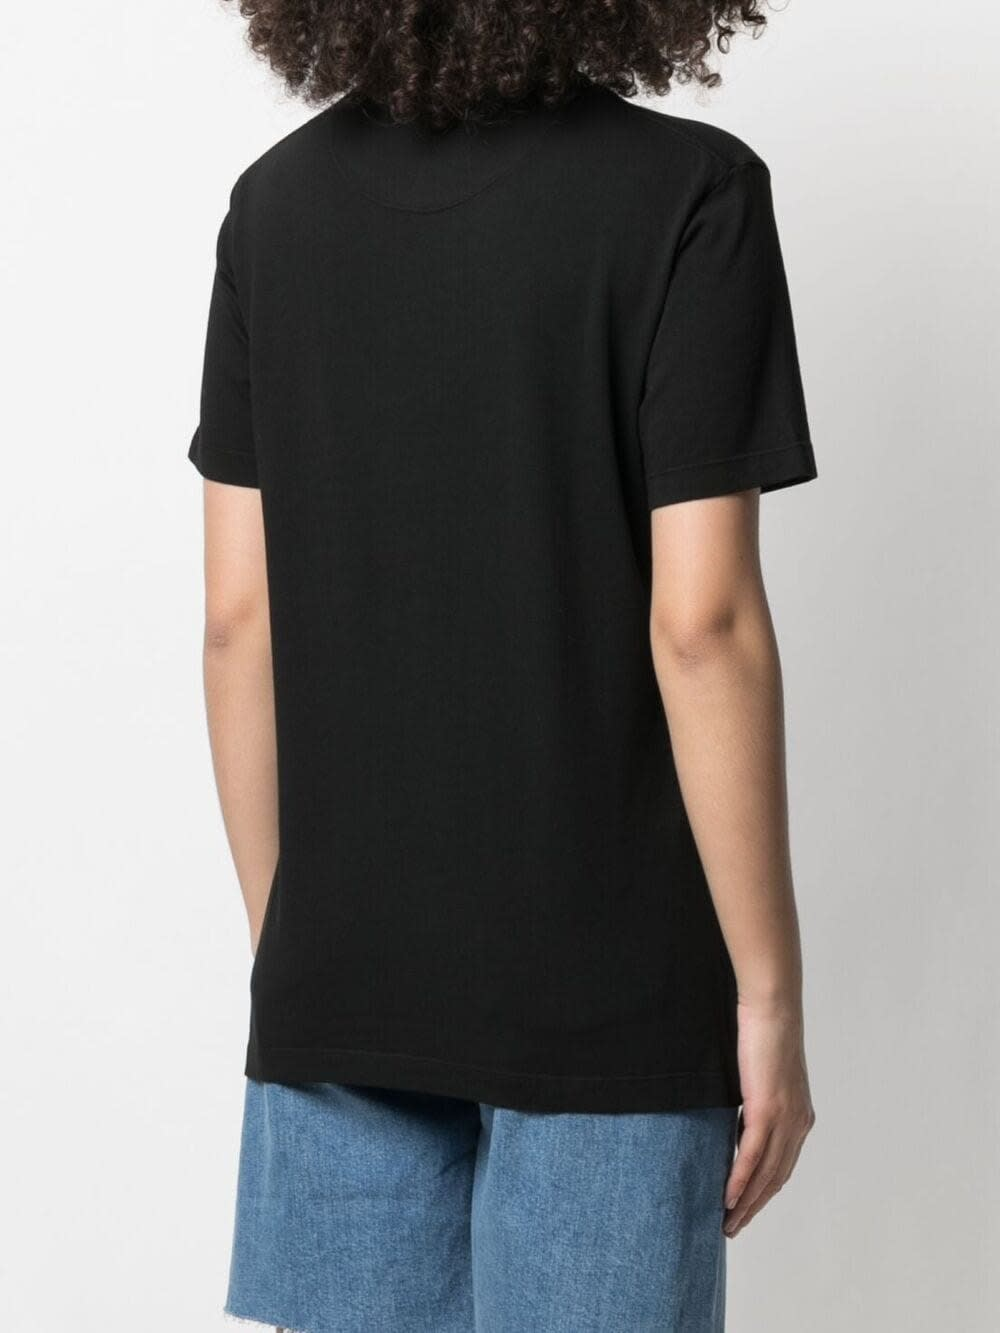 M Missoni Cottons JERSEY T-SHIRT WITH LOGO PRINT